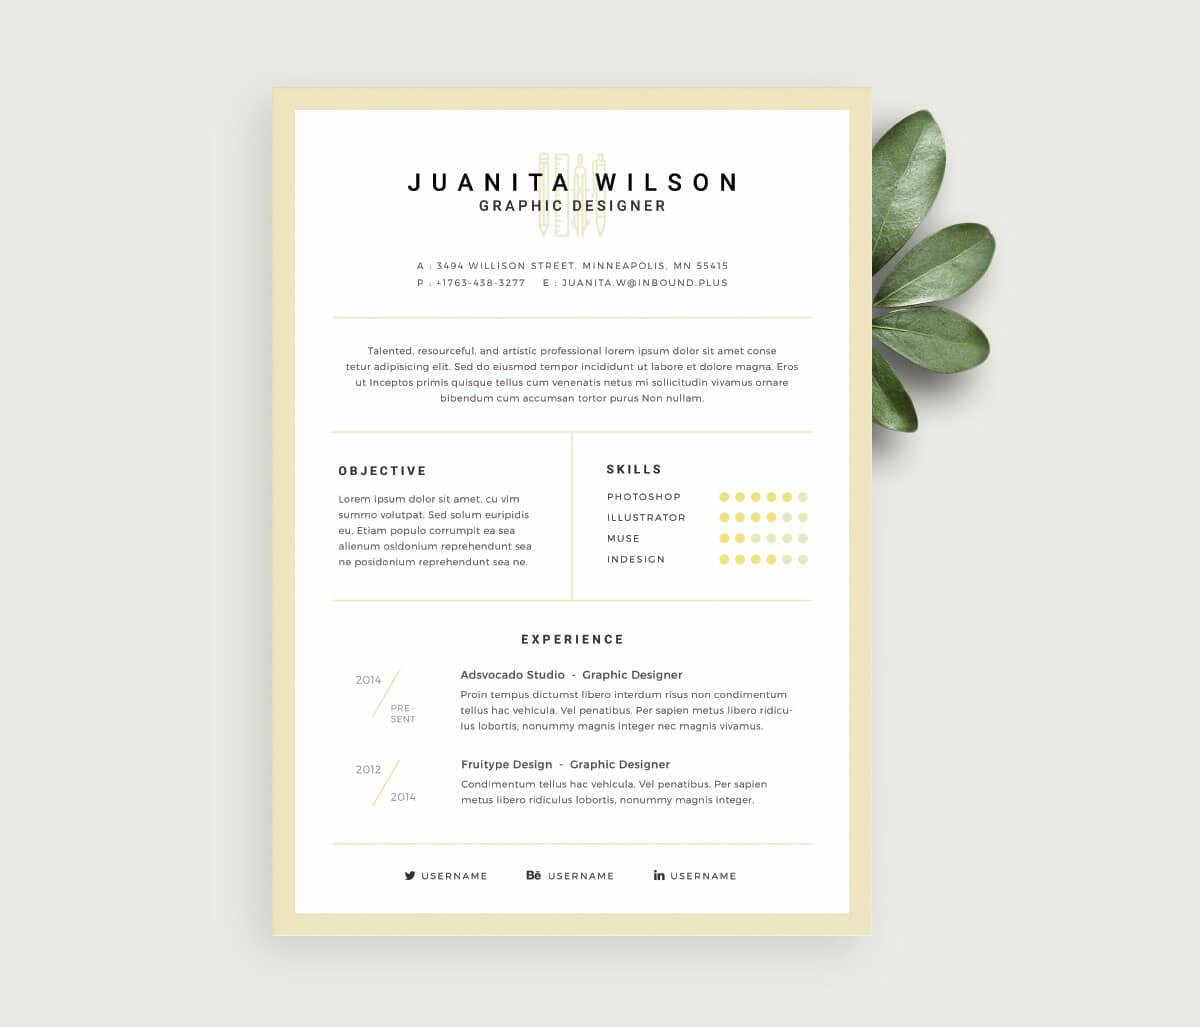 Superb Free Resume Templates: 17 Downloadable Resume Templates To Use